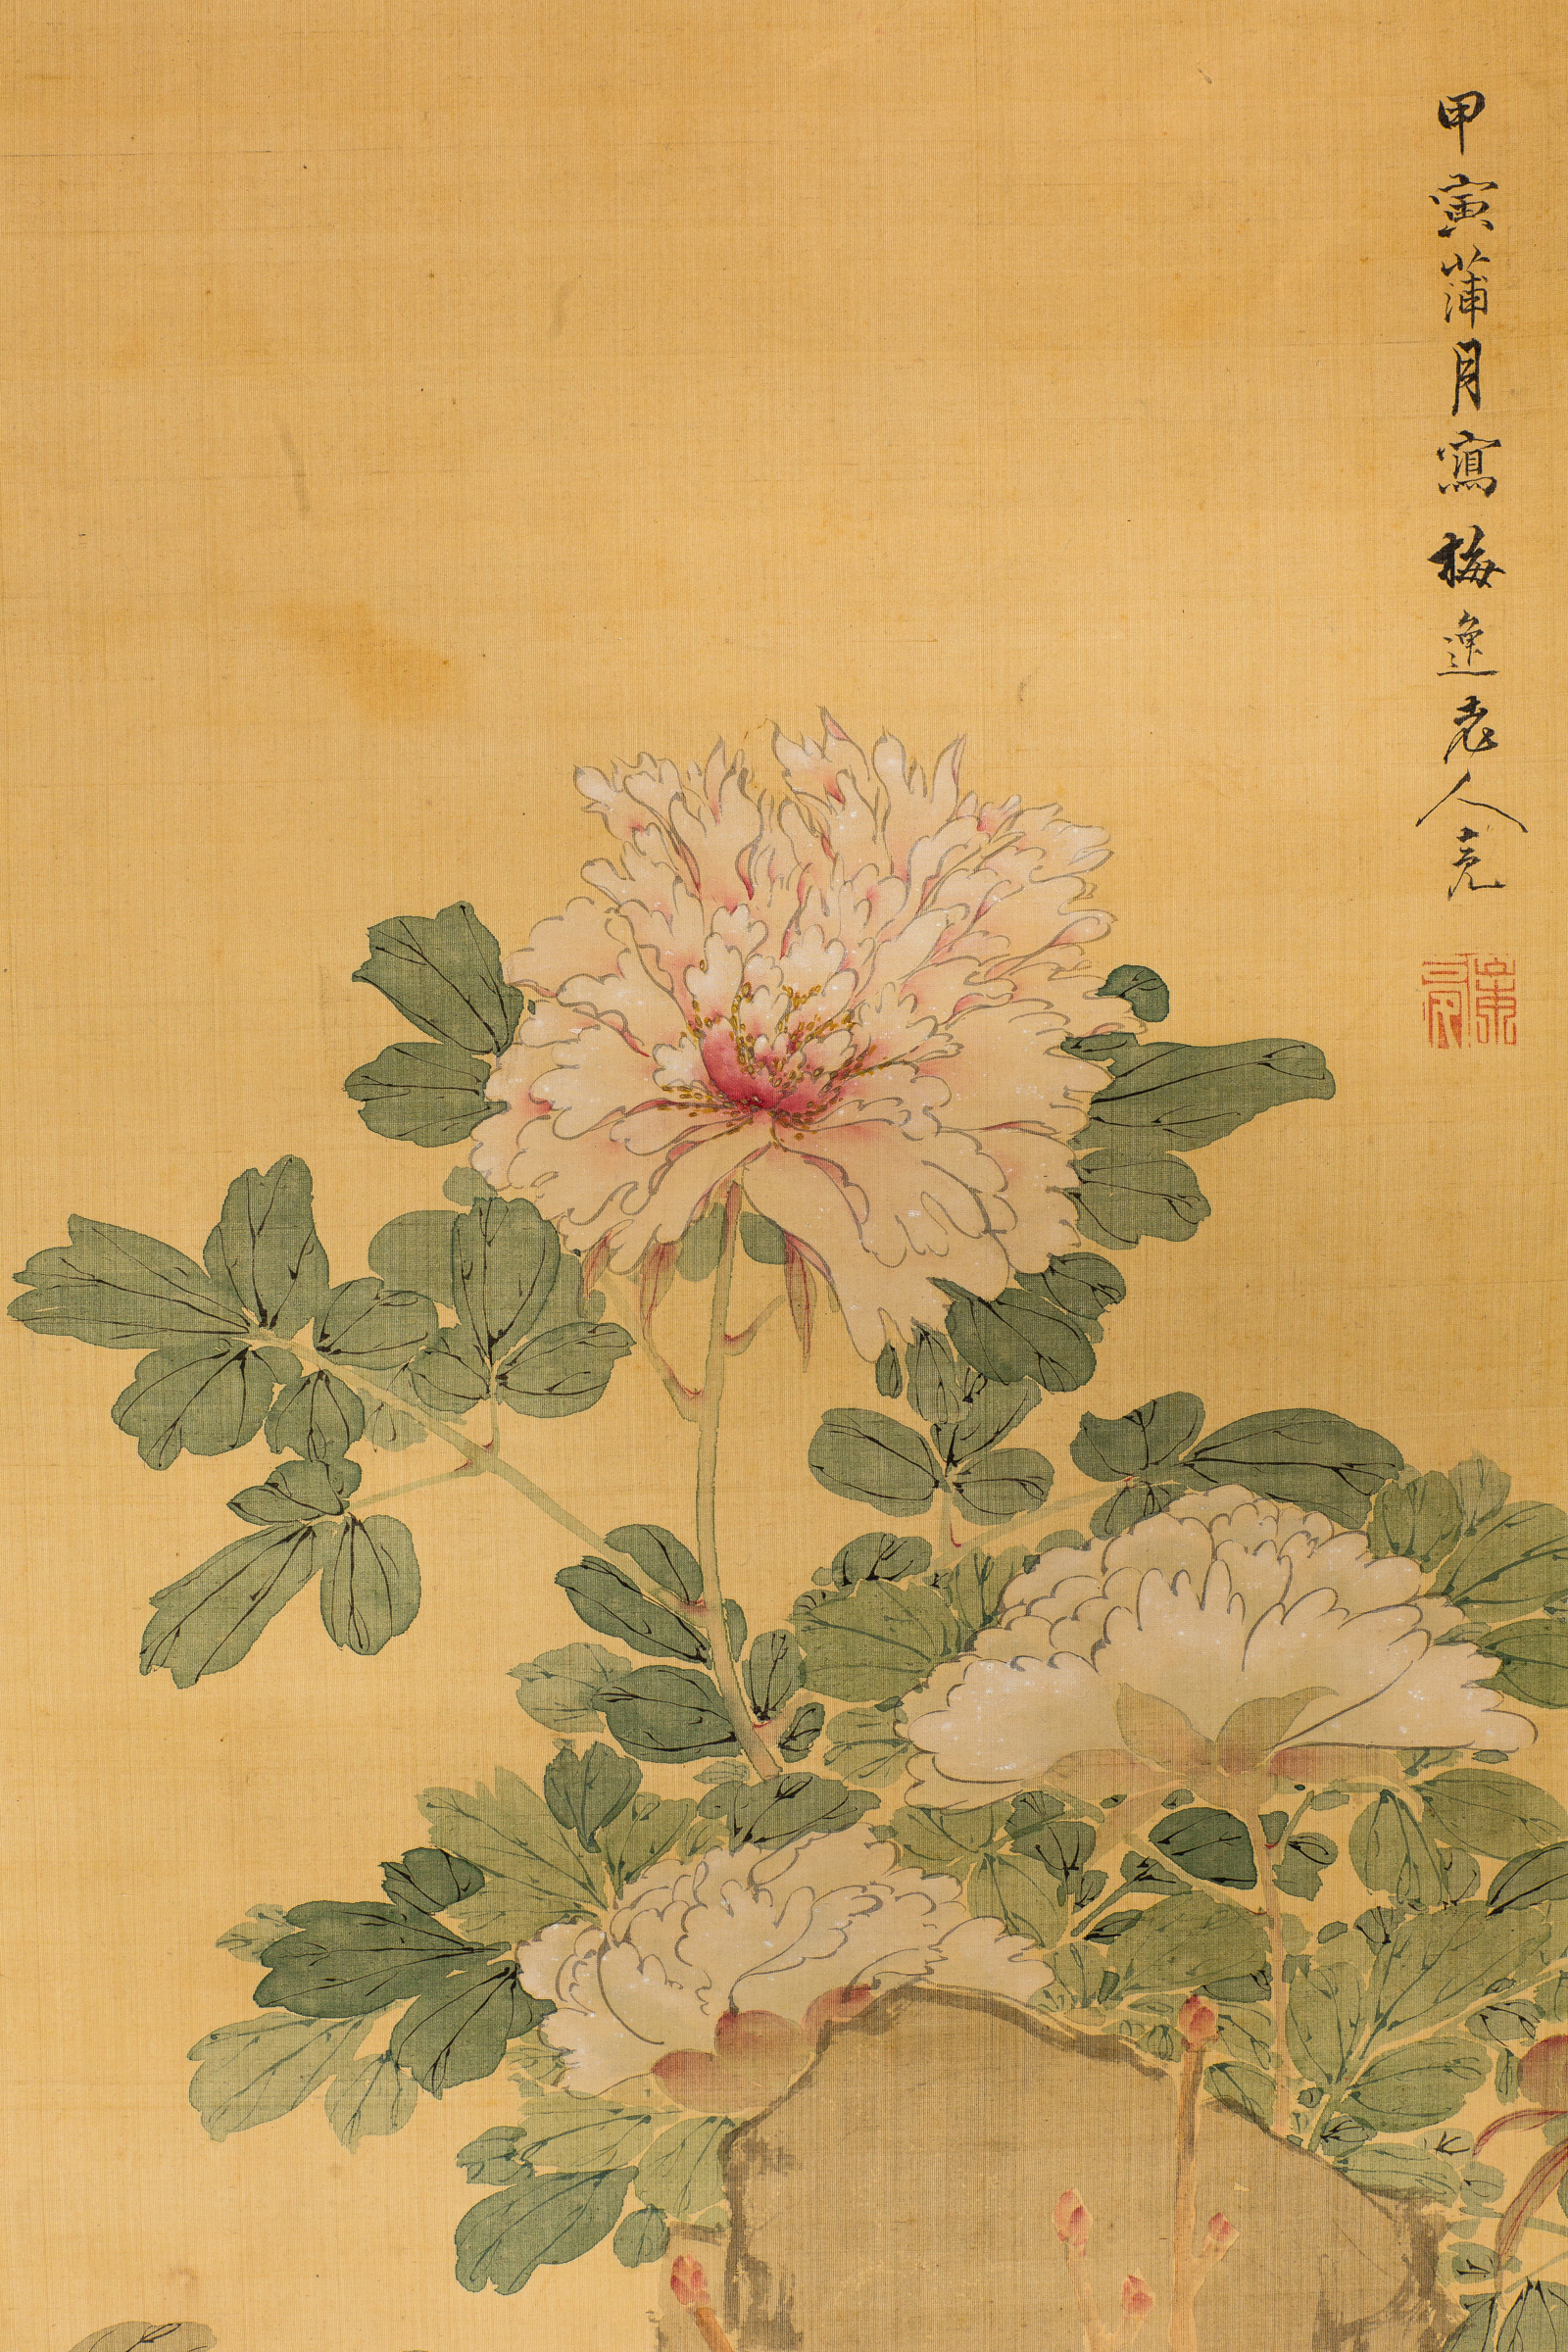 Antique Japanese Scroll of Peonies